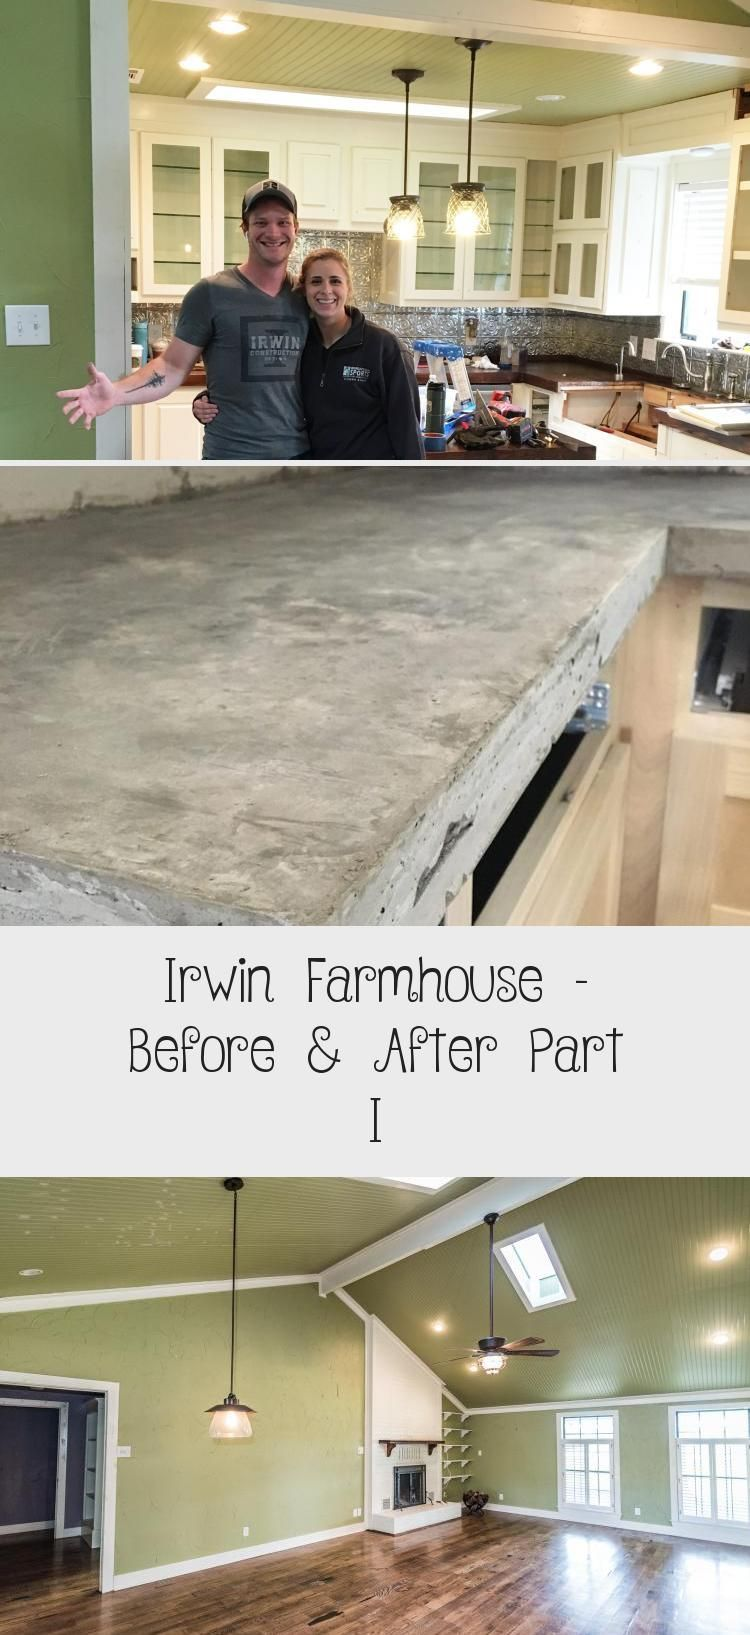 Irwin Farmhouse Before & After Part I Pinokyo in 2020